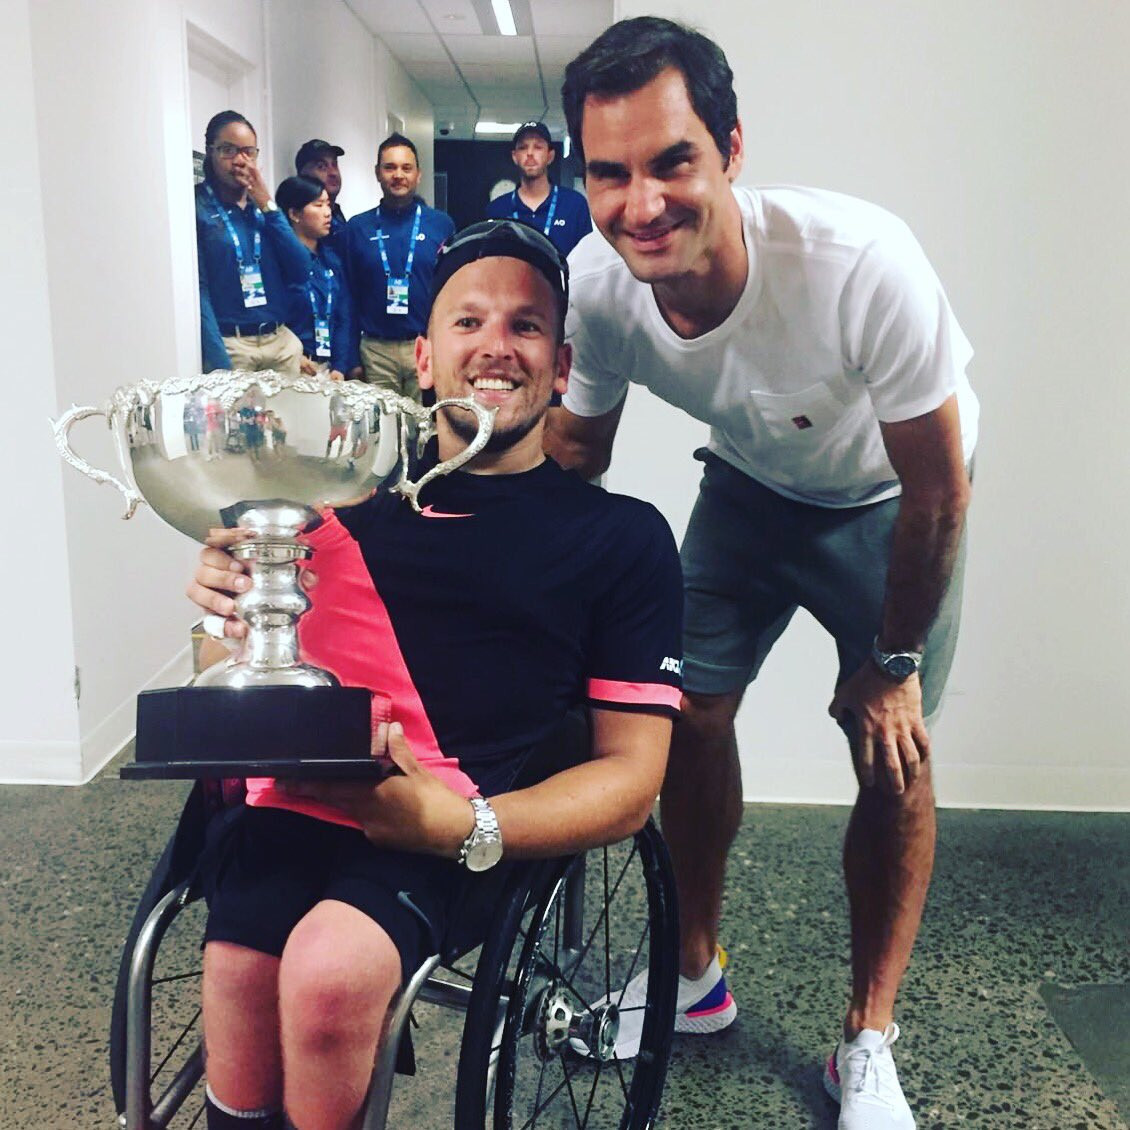 Roger Federer is among the top players backing Dylan Alcott's campaign to get wheelchair tennis back on the programme at this year's US Open in New York City ©Twitter